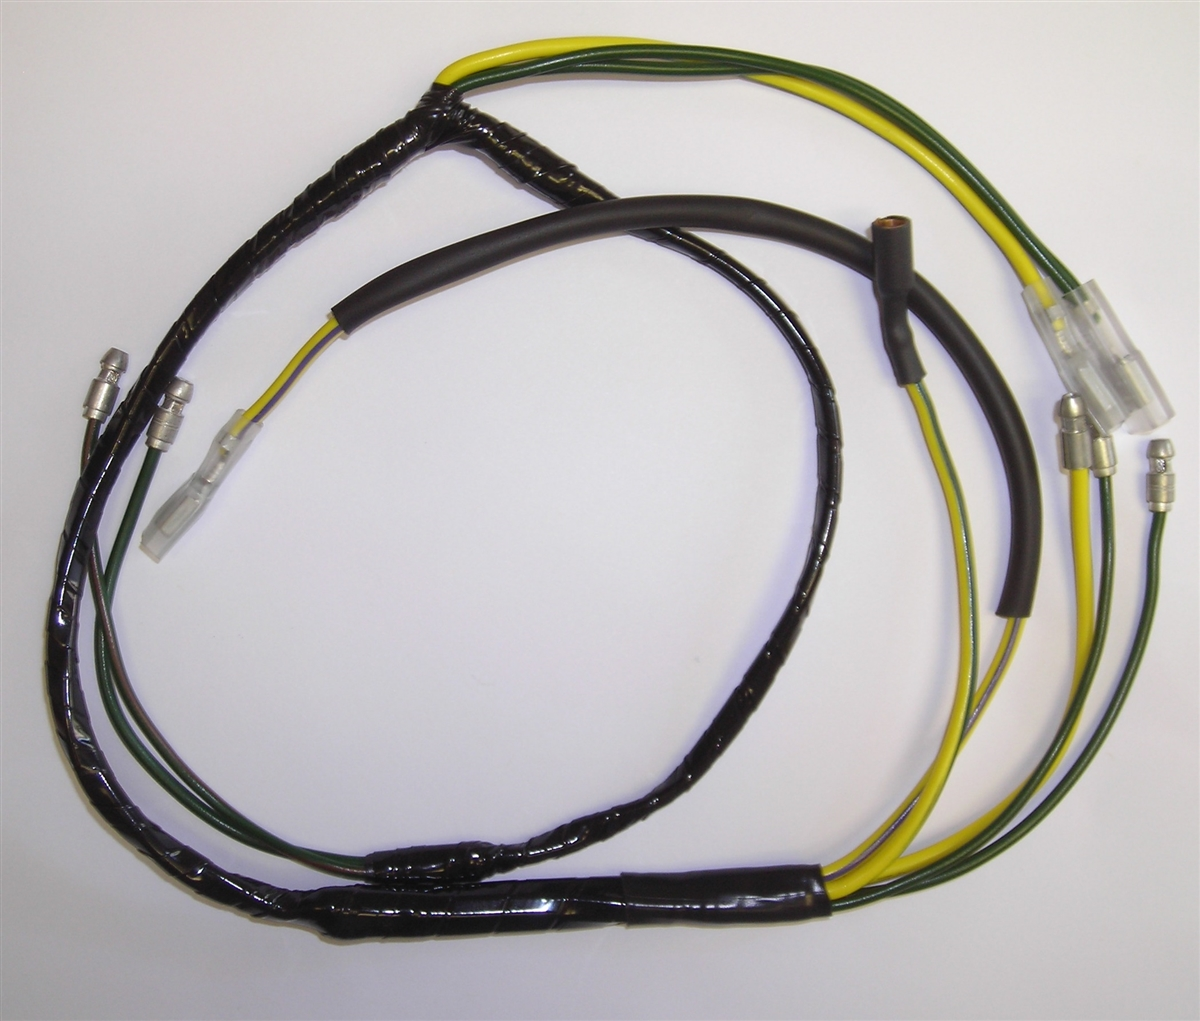 1560 2?1445434201 spitfire j type overdrive wiring harness 73 triumph spitfire 1500 wiring harness at readyjetset.co